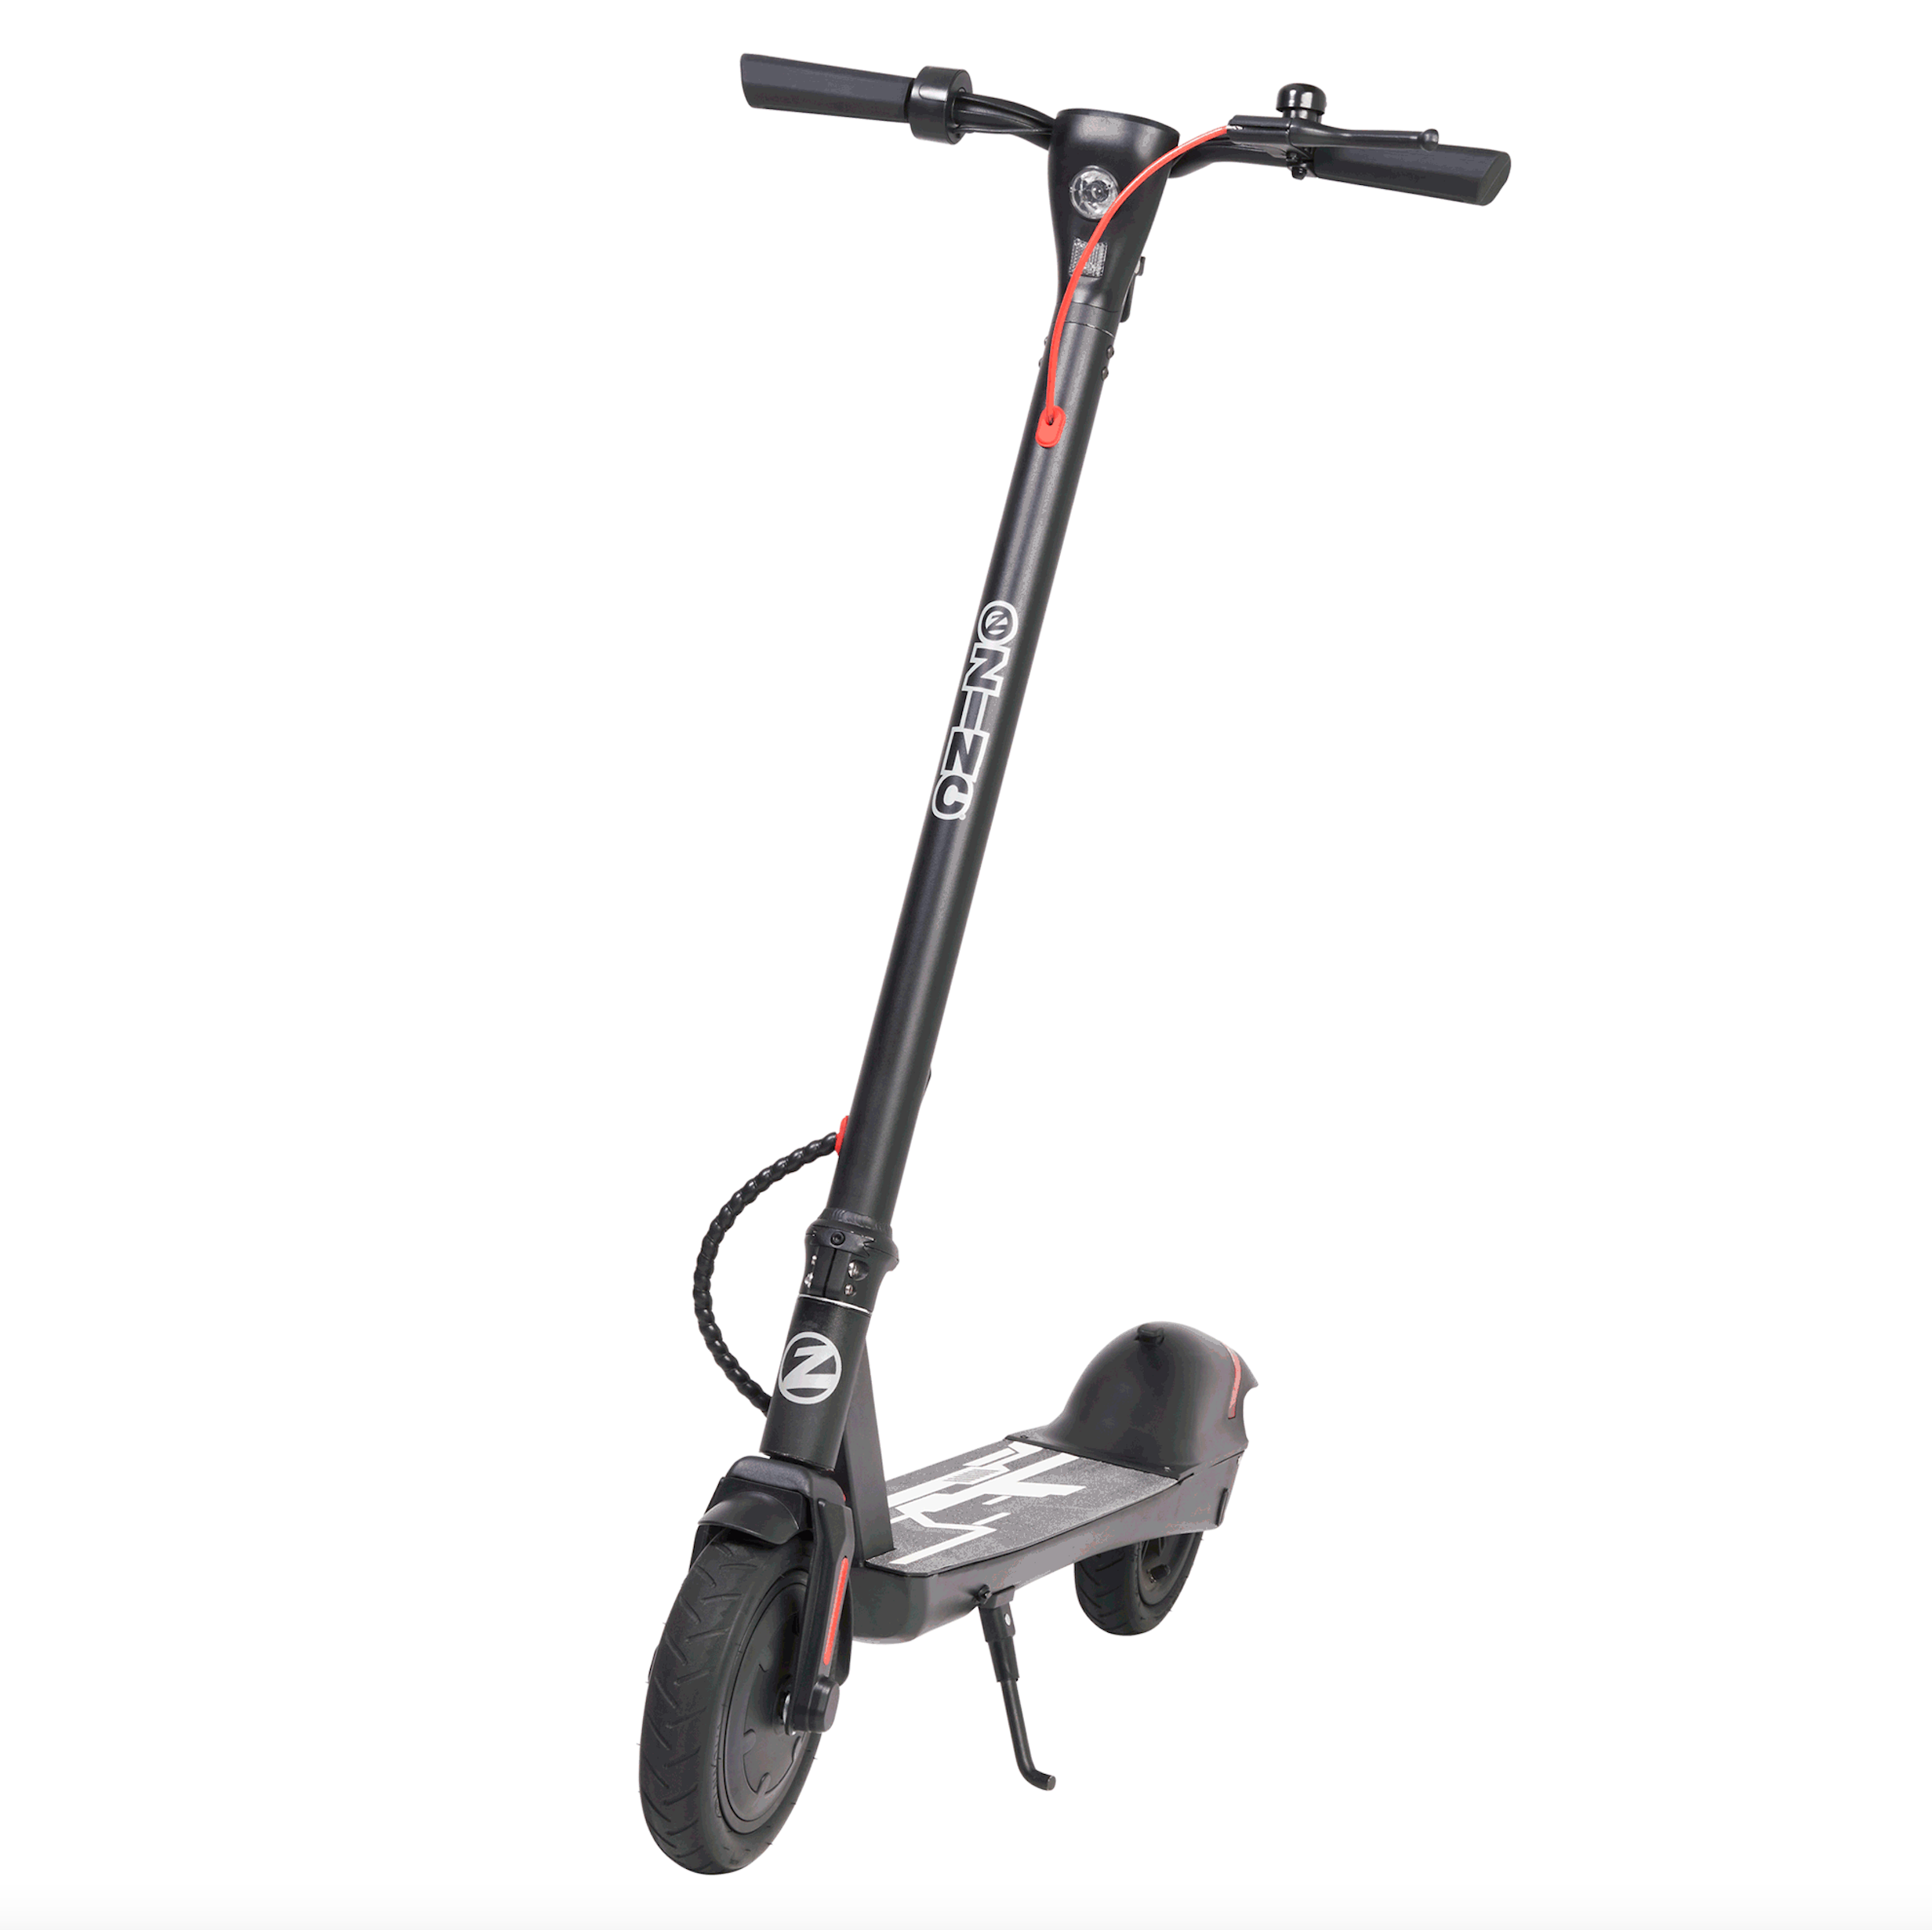 Zinc Eco Max E-Scooter on Kick Stand